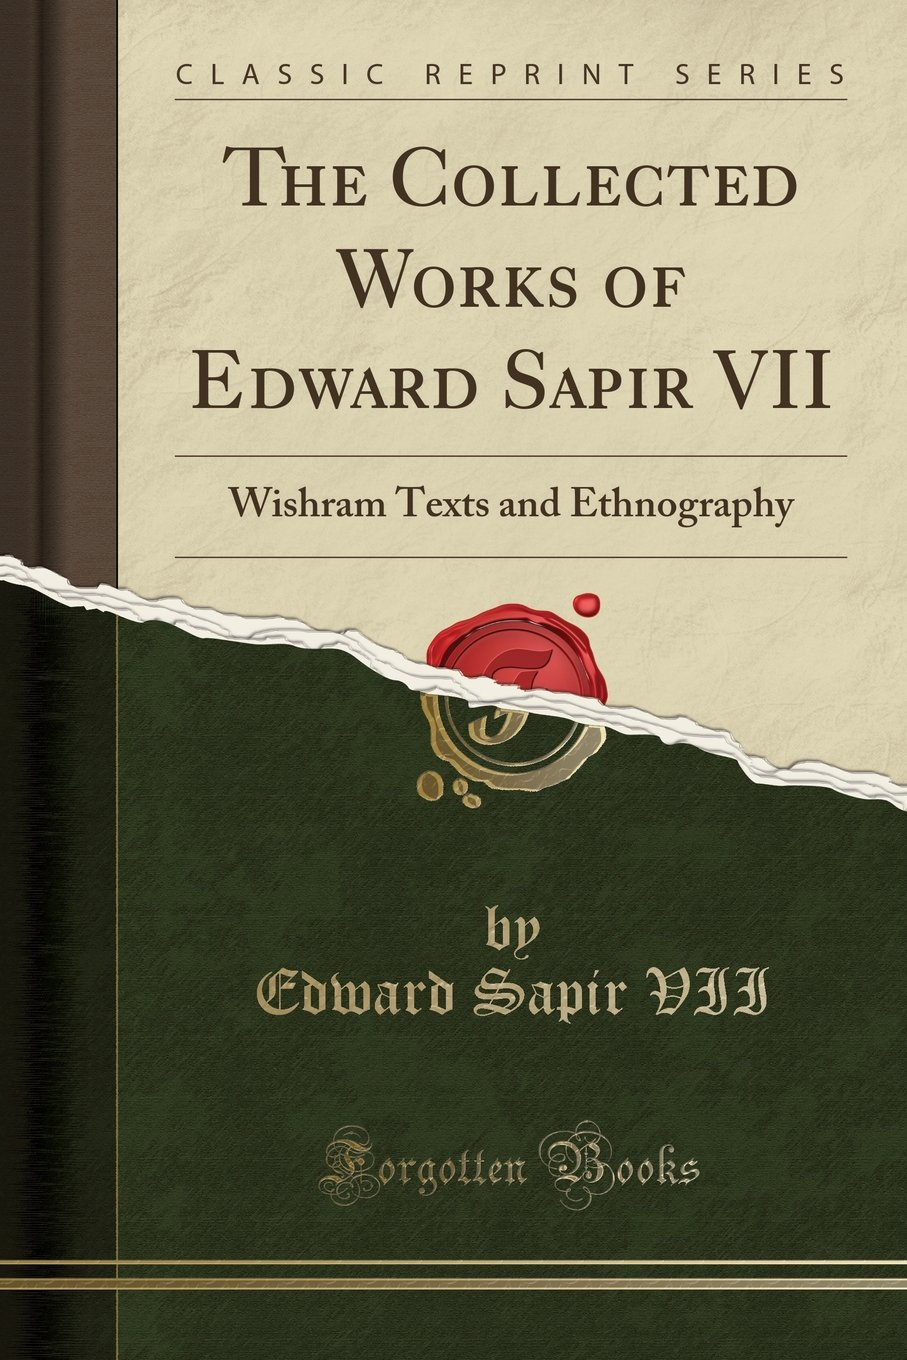 The Collected Works of Edward Sapir VII: Wishram Texts and Ethnography (Classic Reprint) PDF